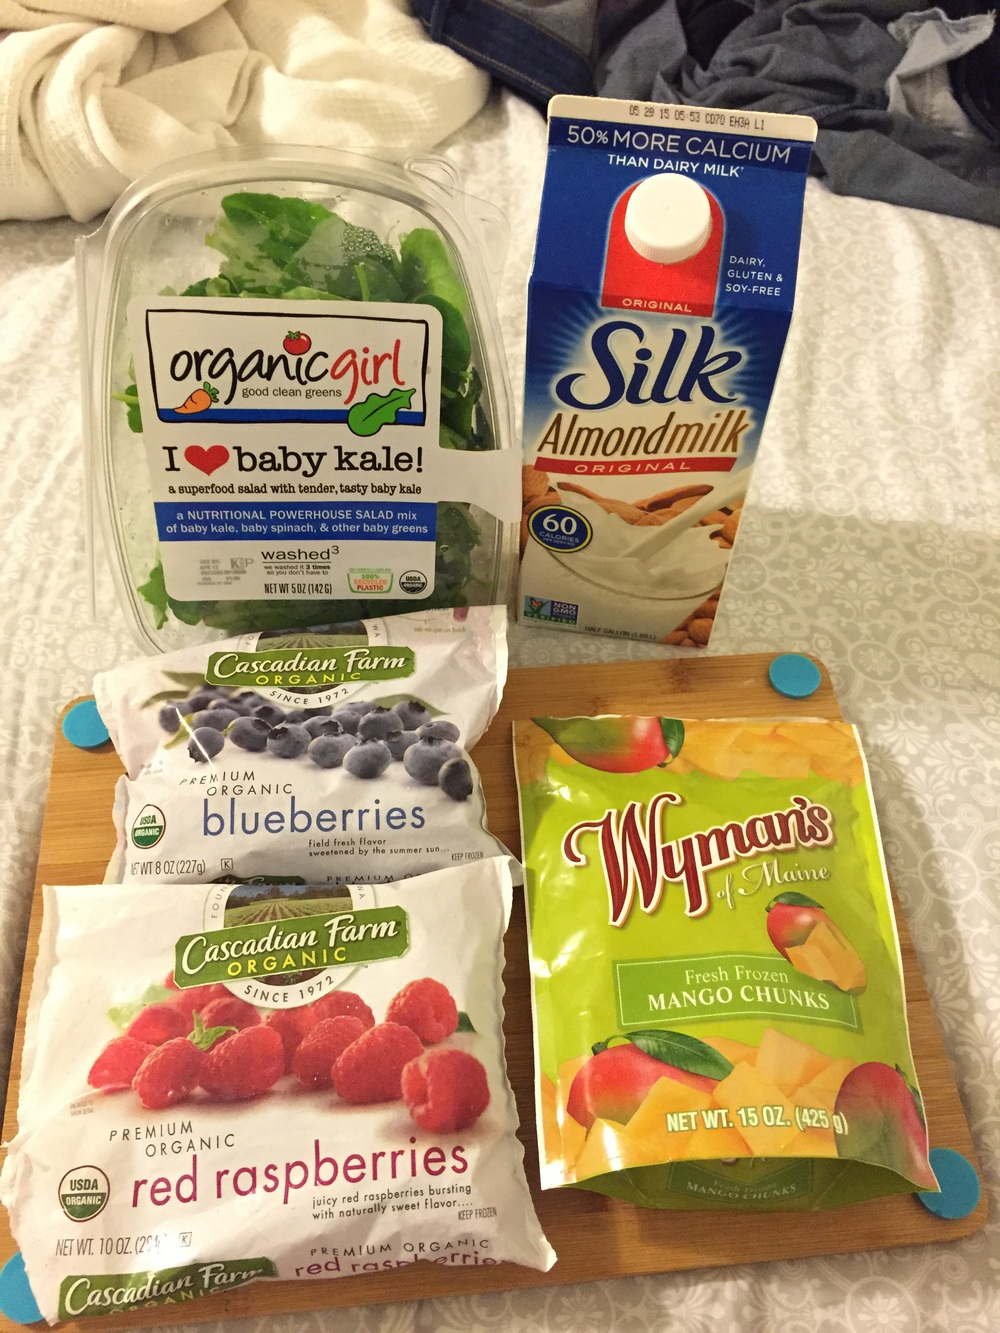 ingredients for the mango berry green smoothie - kale, berries, almond milk, mango